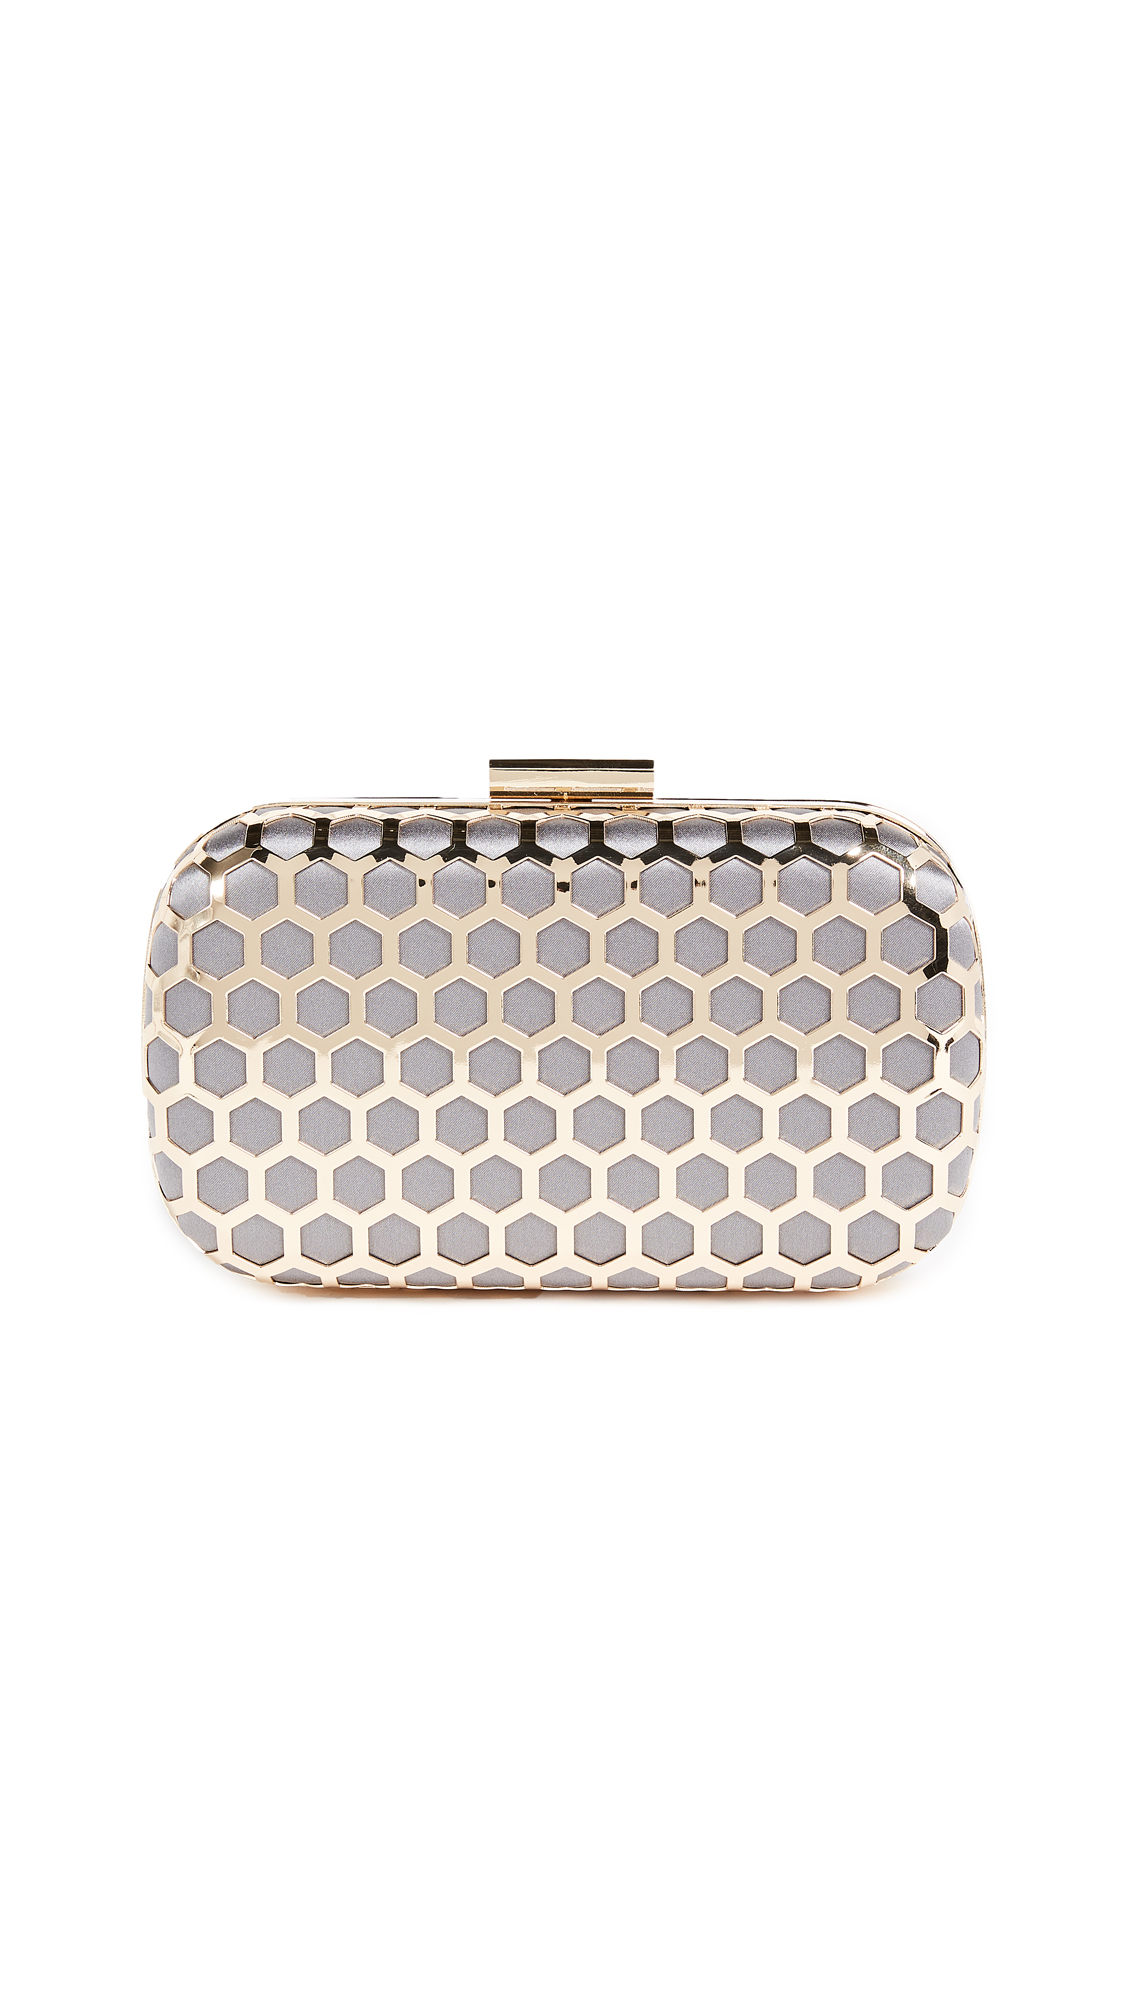 Inge Christopher Palermo Clutch - Grey